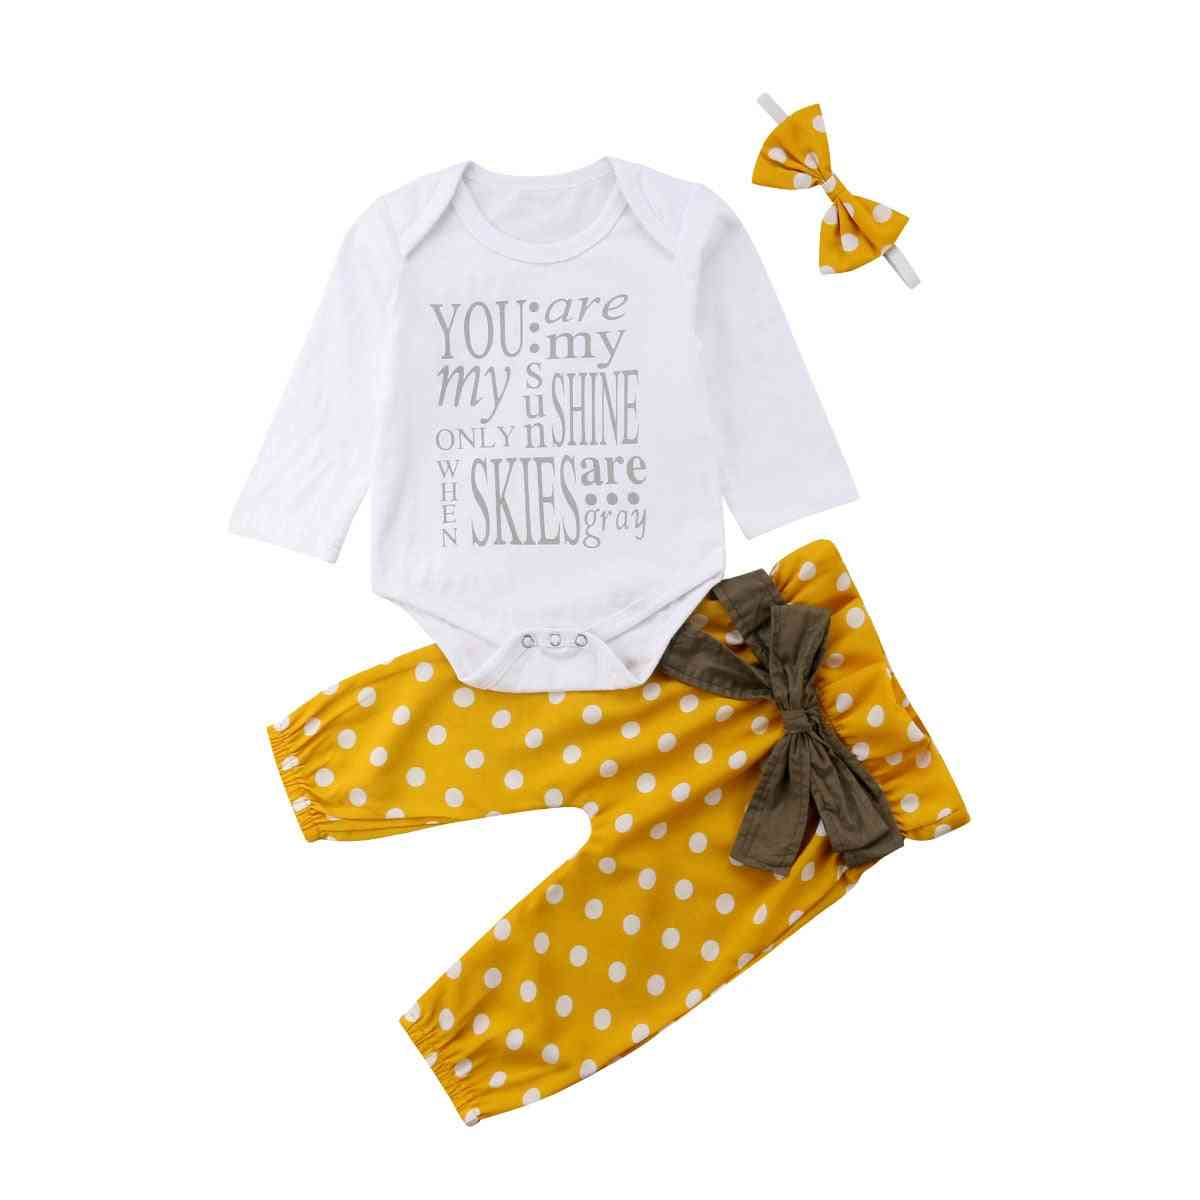 Newborn Baby Girl Cotton Tops, Romper Dot Bowknot Pants - Outfits Clothes